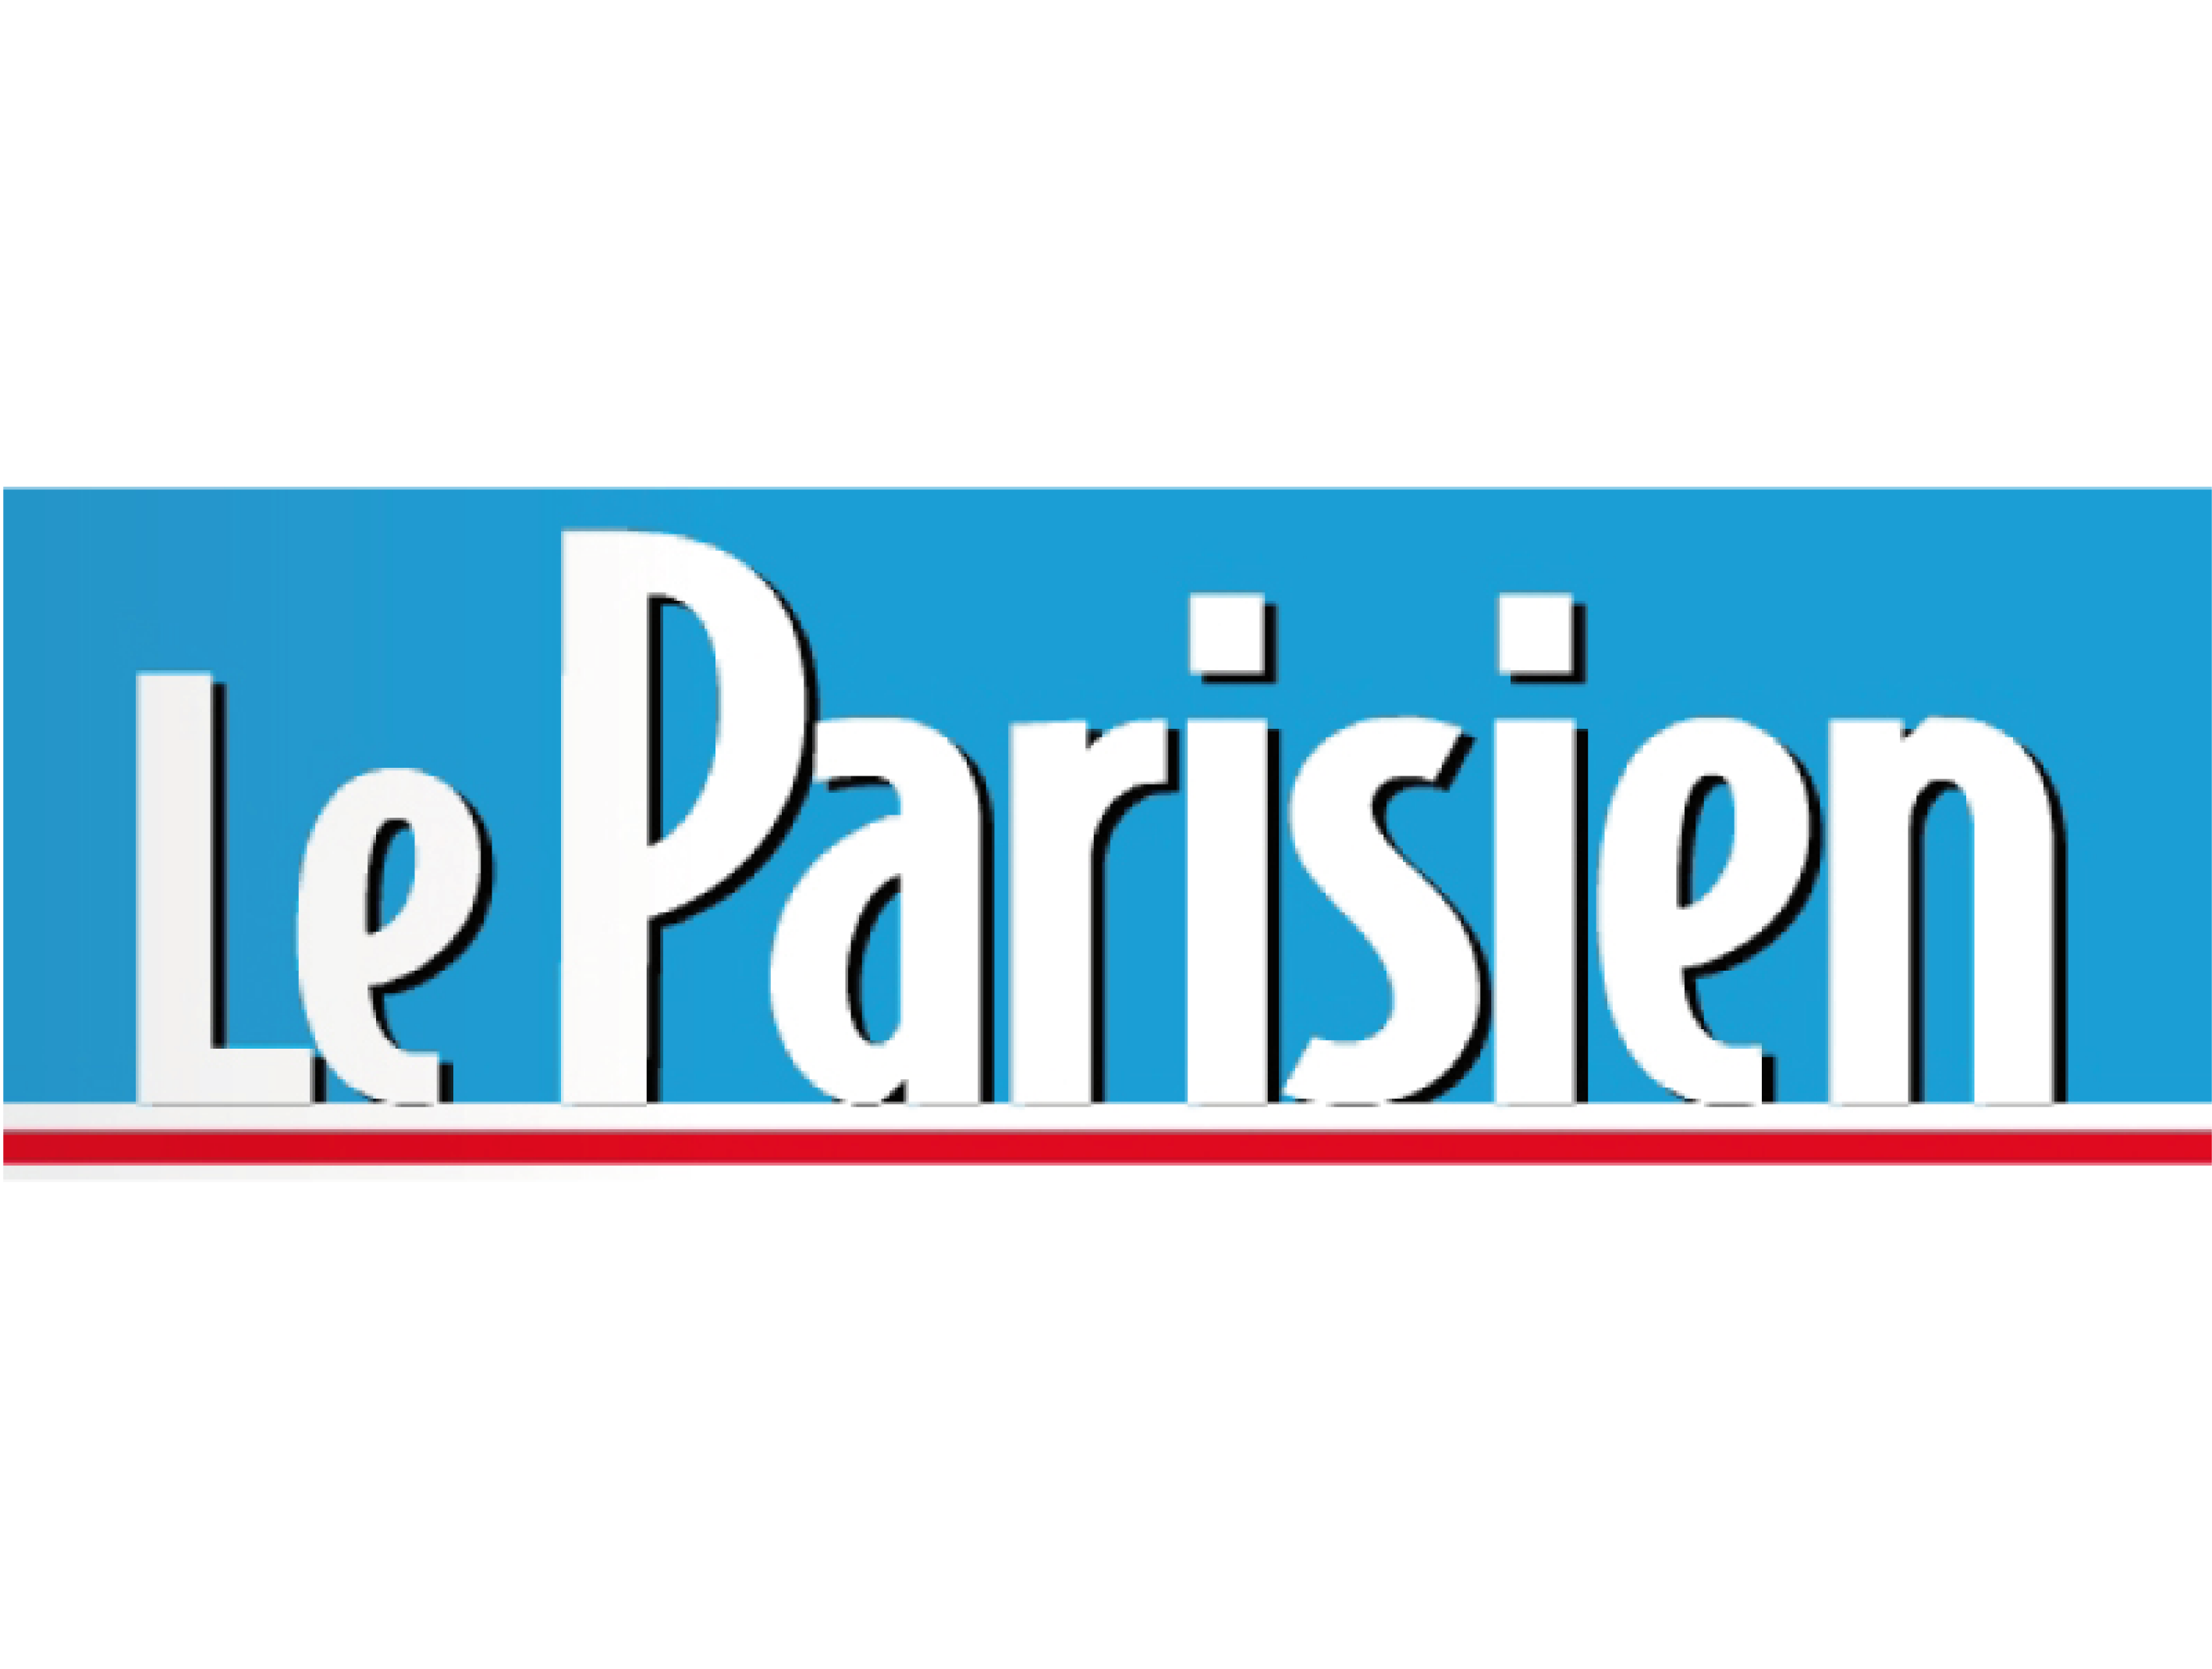 http://www.leparisien.fr/societe/stages-d-observation-en-or-sans-piston-22-01-2019-7990047.php